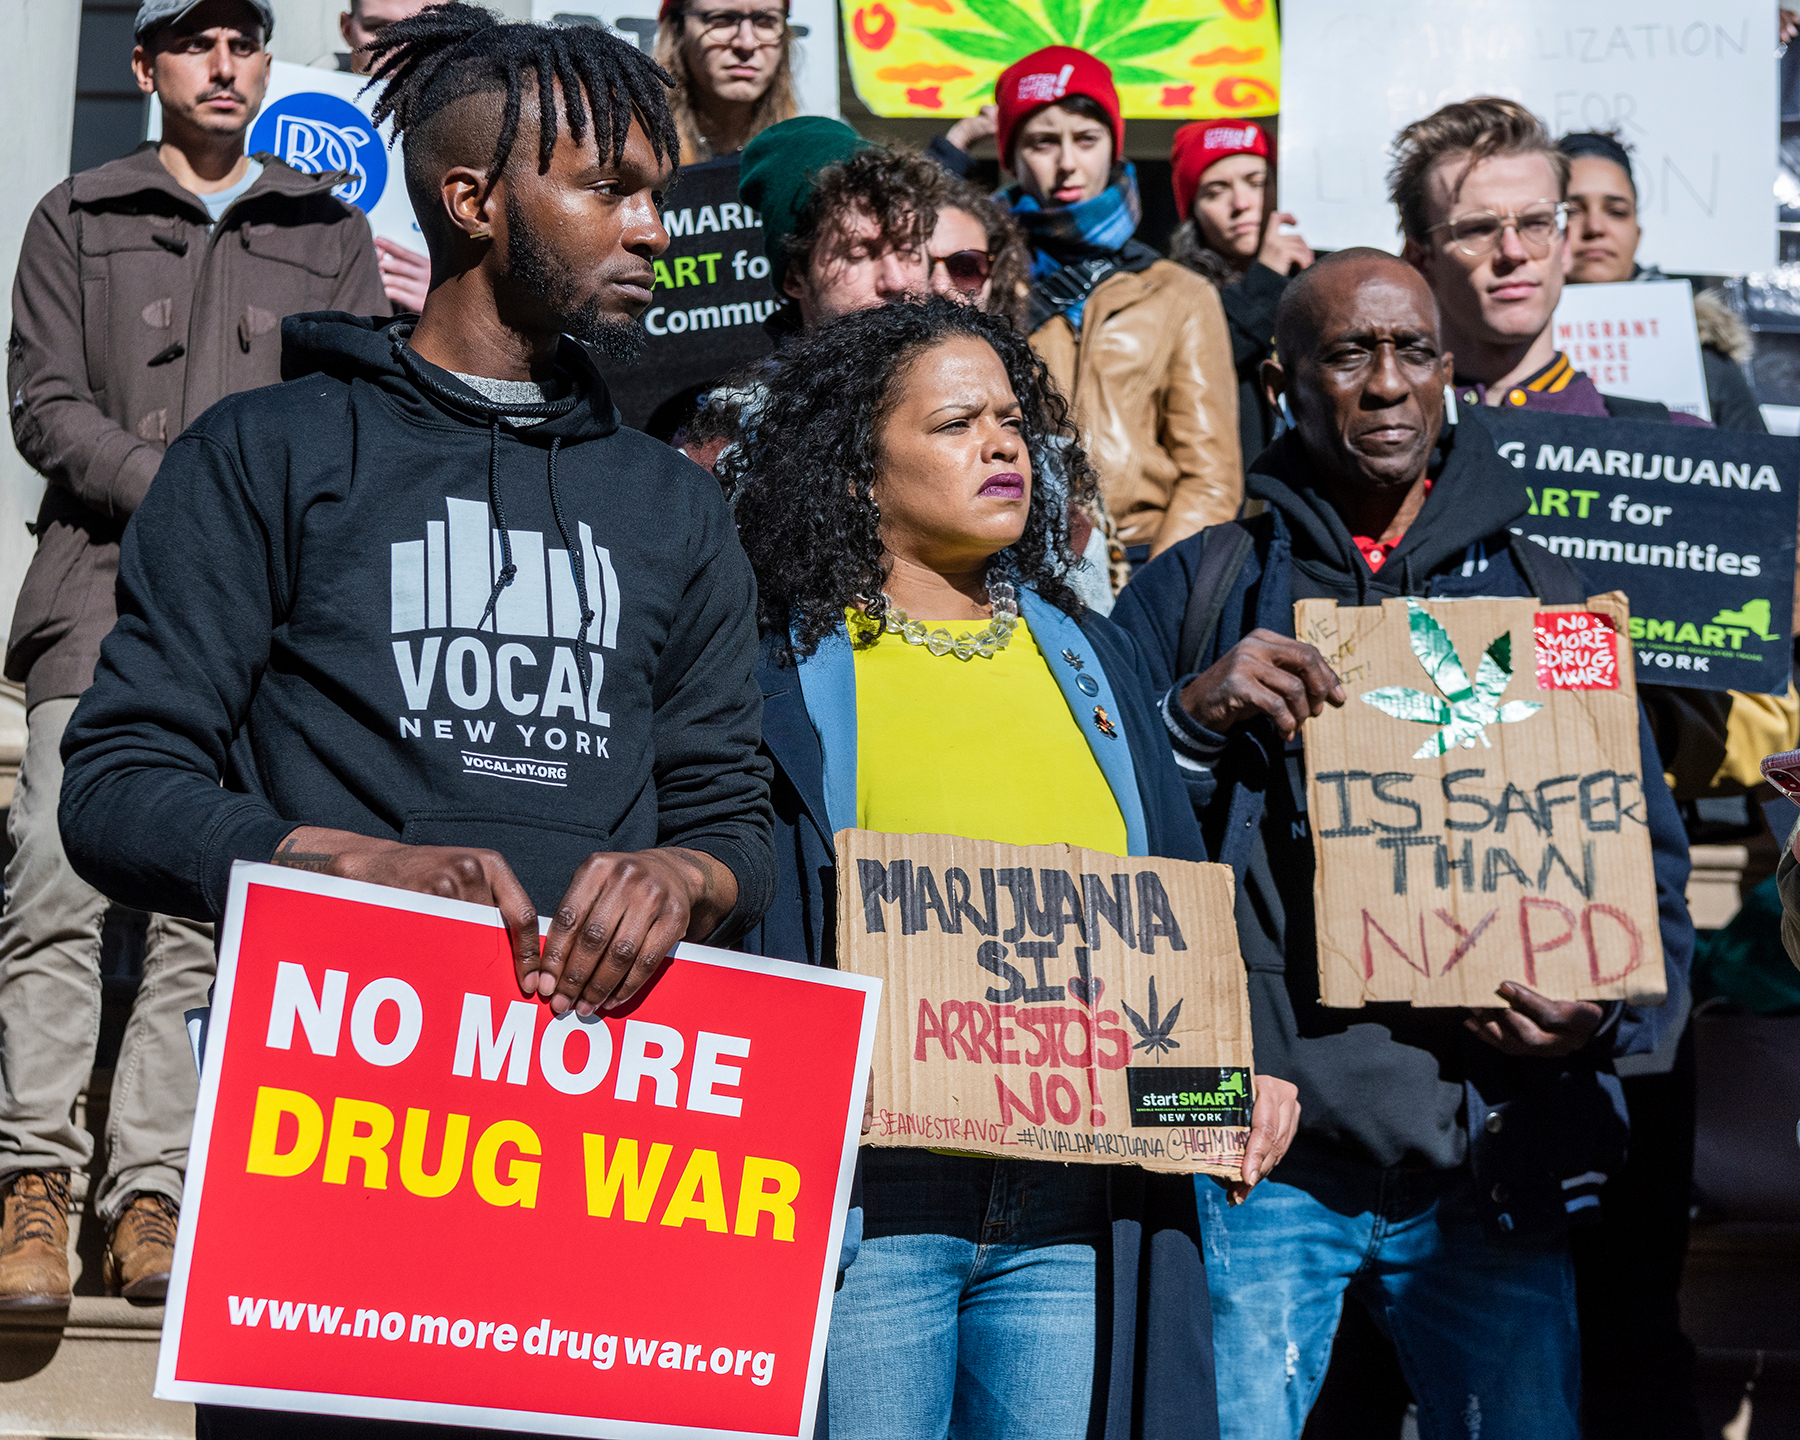 Supporters of the Marijuana Regulation and Taxation Act (MRTA) rally on the steps of New York City Hall on November 21, 2019. The law would legalize and regulate the use of marijuana in New York State, ending disproportionate policing and providing millions of dollars in tax revenue. (Photo by Gabriele Holtermann-Gorden/Sipa USA)(Sipa via AP Images)